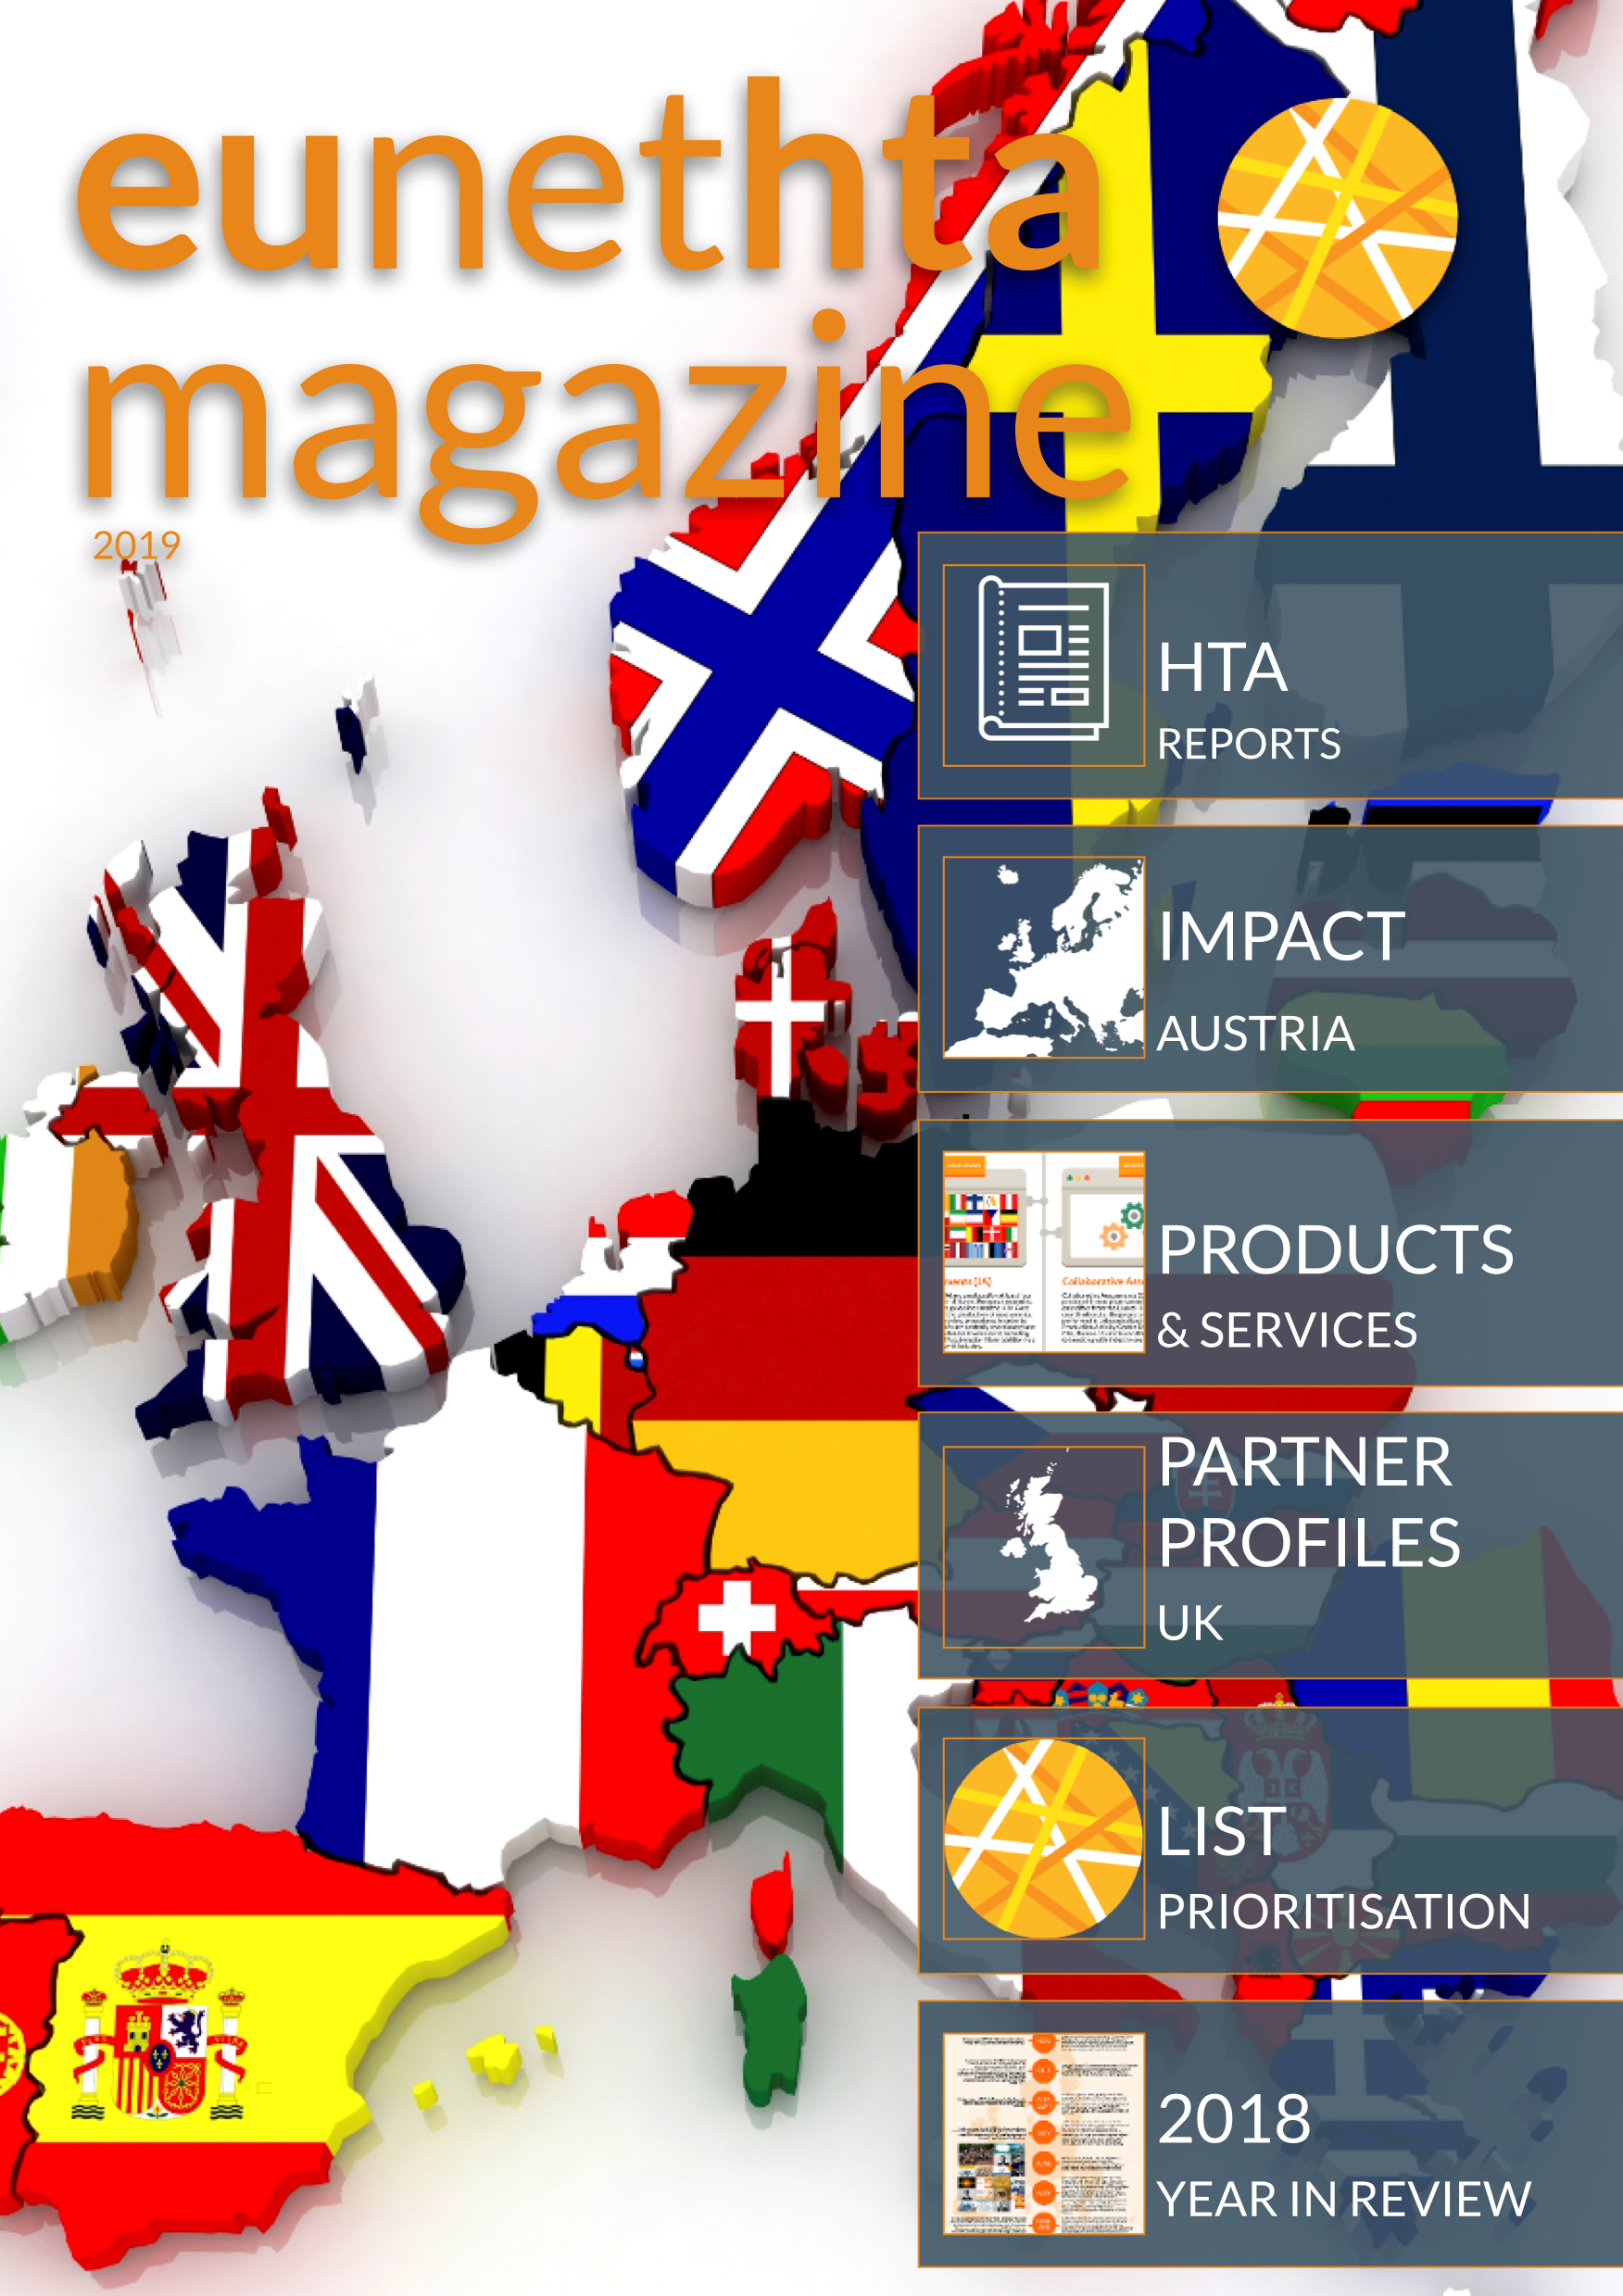 EUnetHTA Magazine: Winter 2019